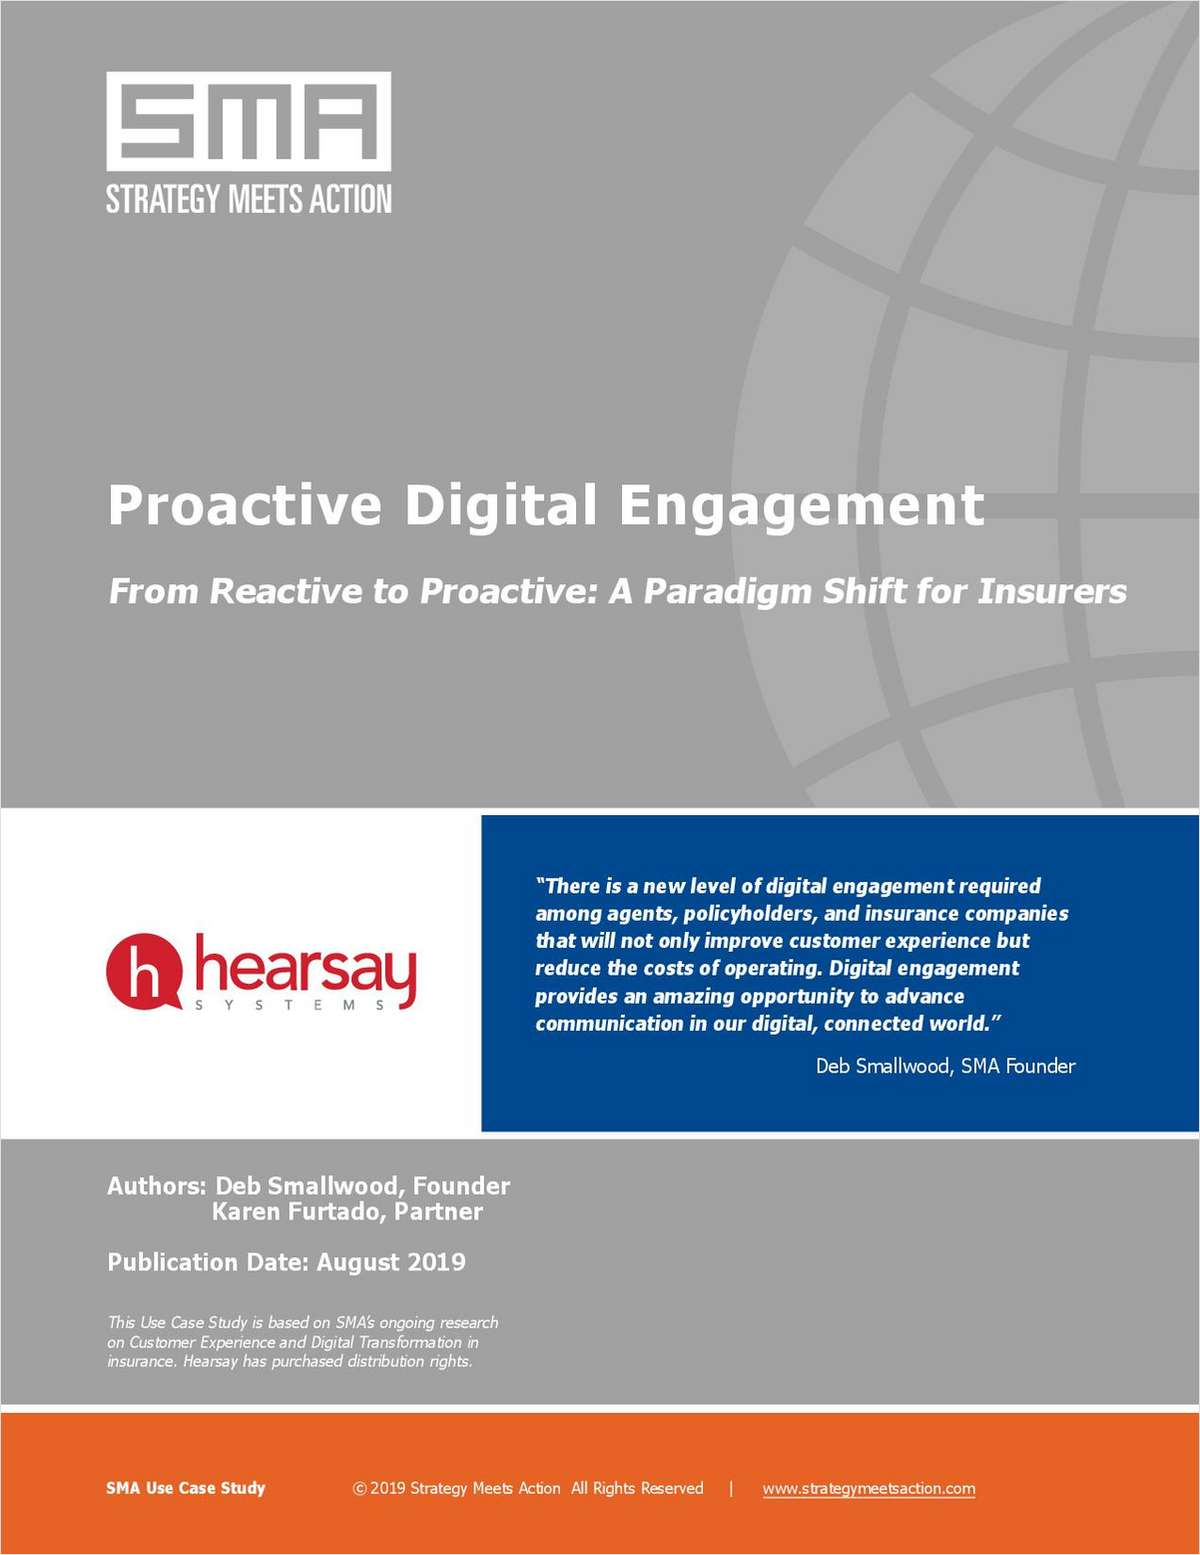 Proactive Digital Engagement -- From Reactive to Proactive: A Paradigm Shift for Insurers